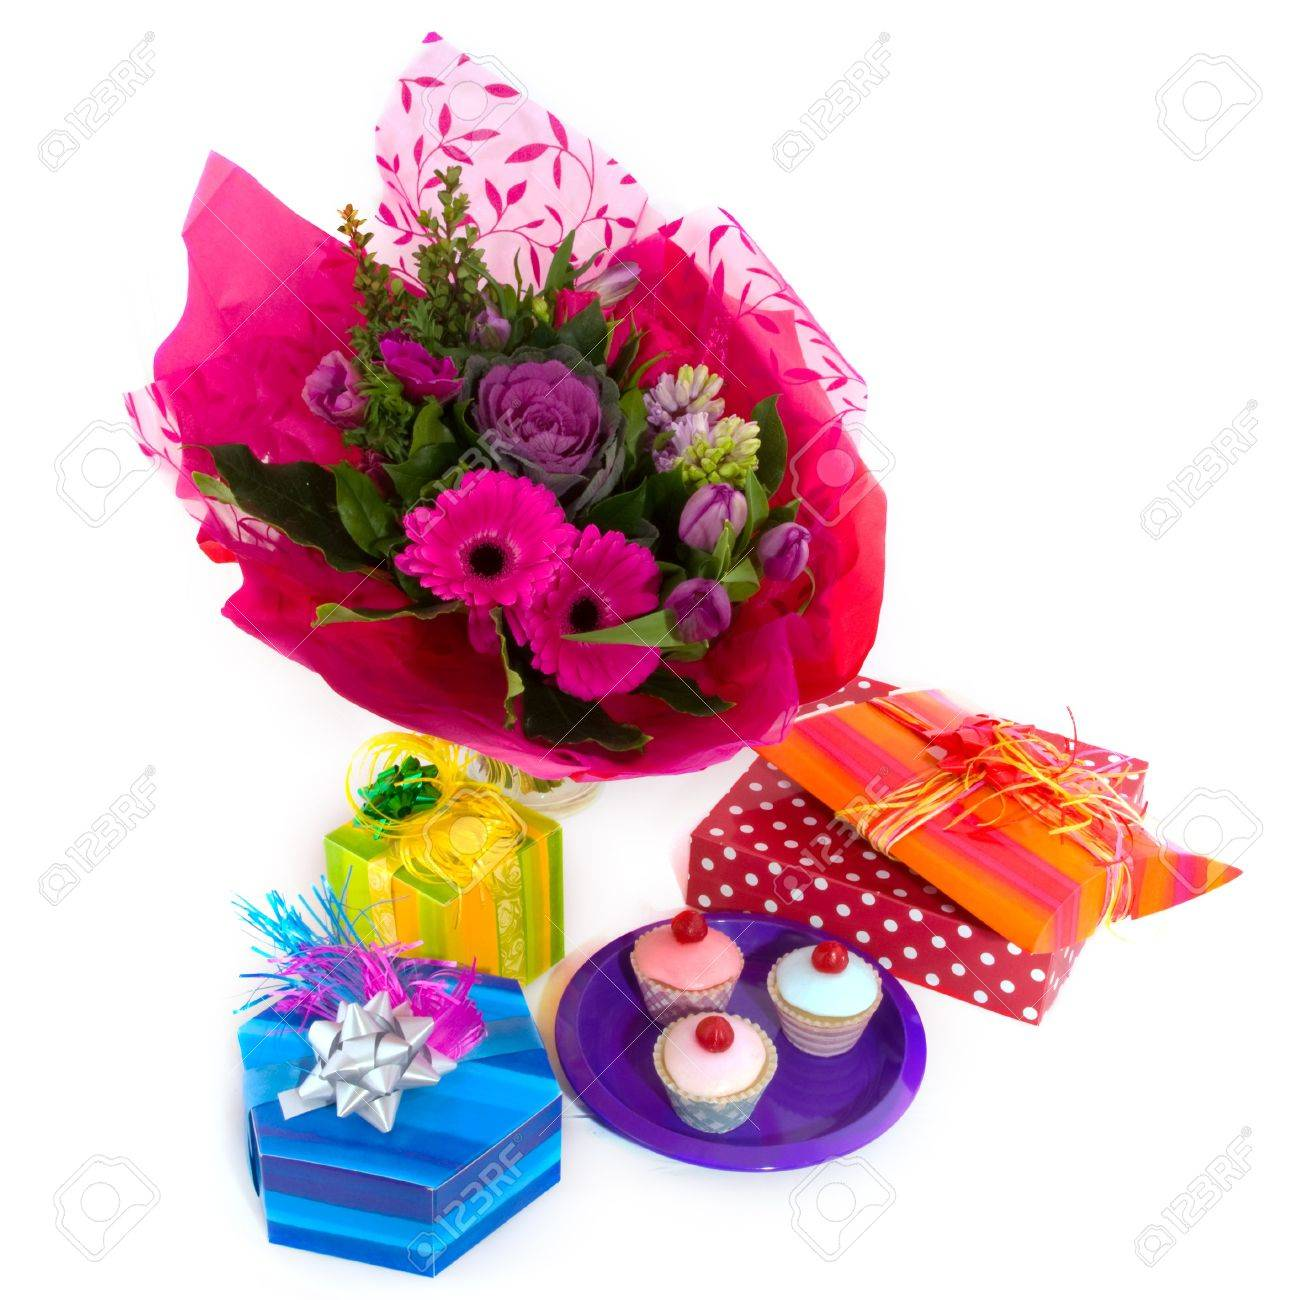 Happy birthday with flowers surprises and fancy cakes stock photo happy birthday with flowers surprises and fancy cakes stock photo 4261184 izmirmasajfo